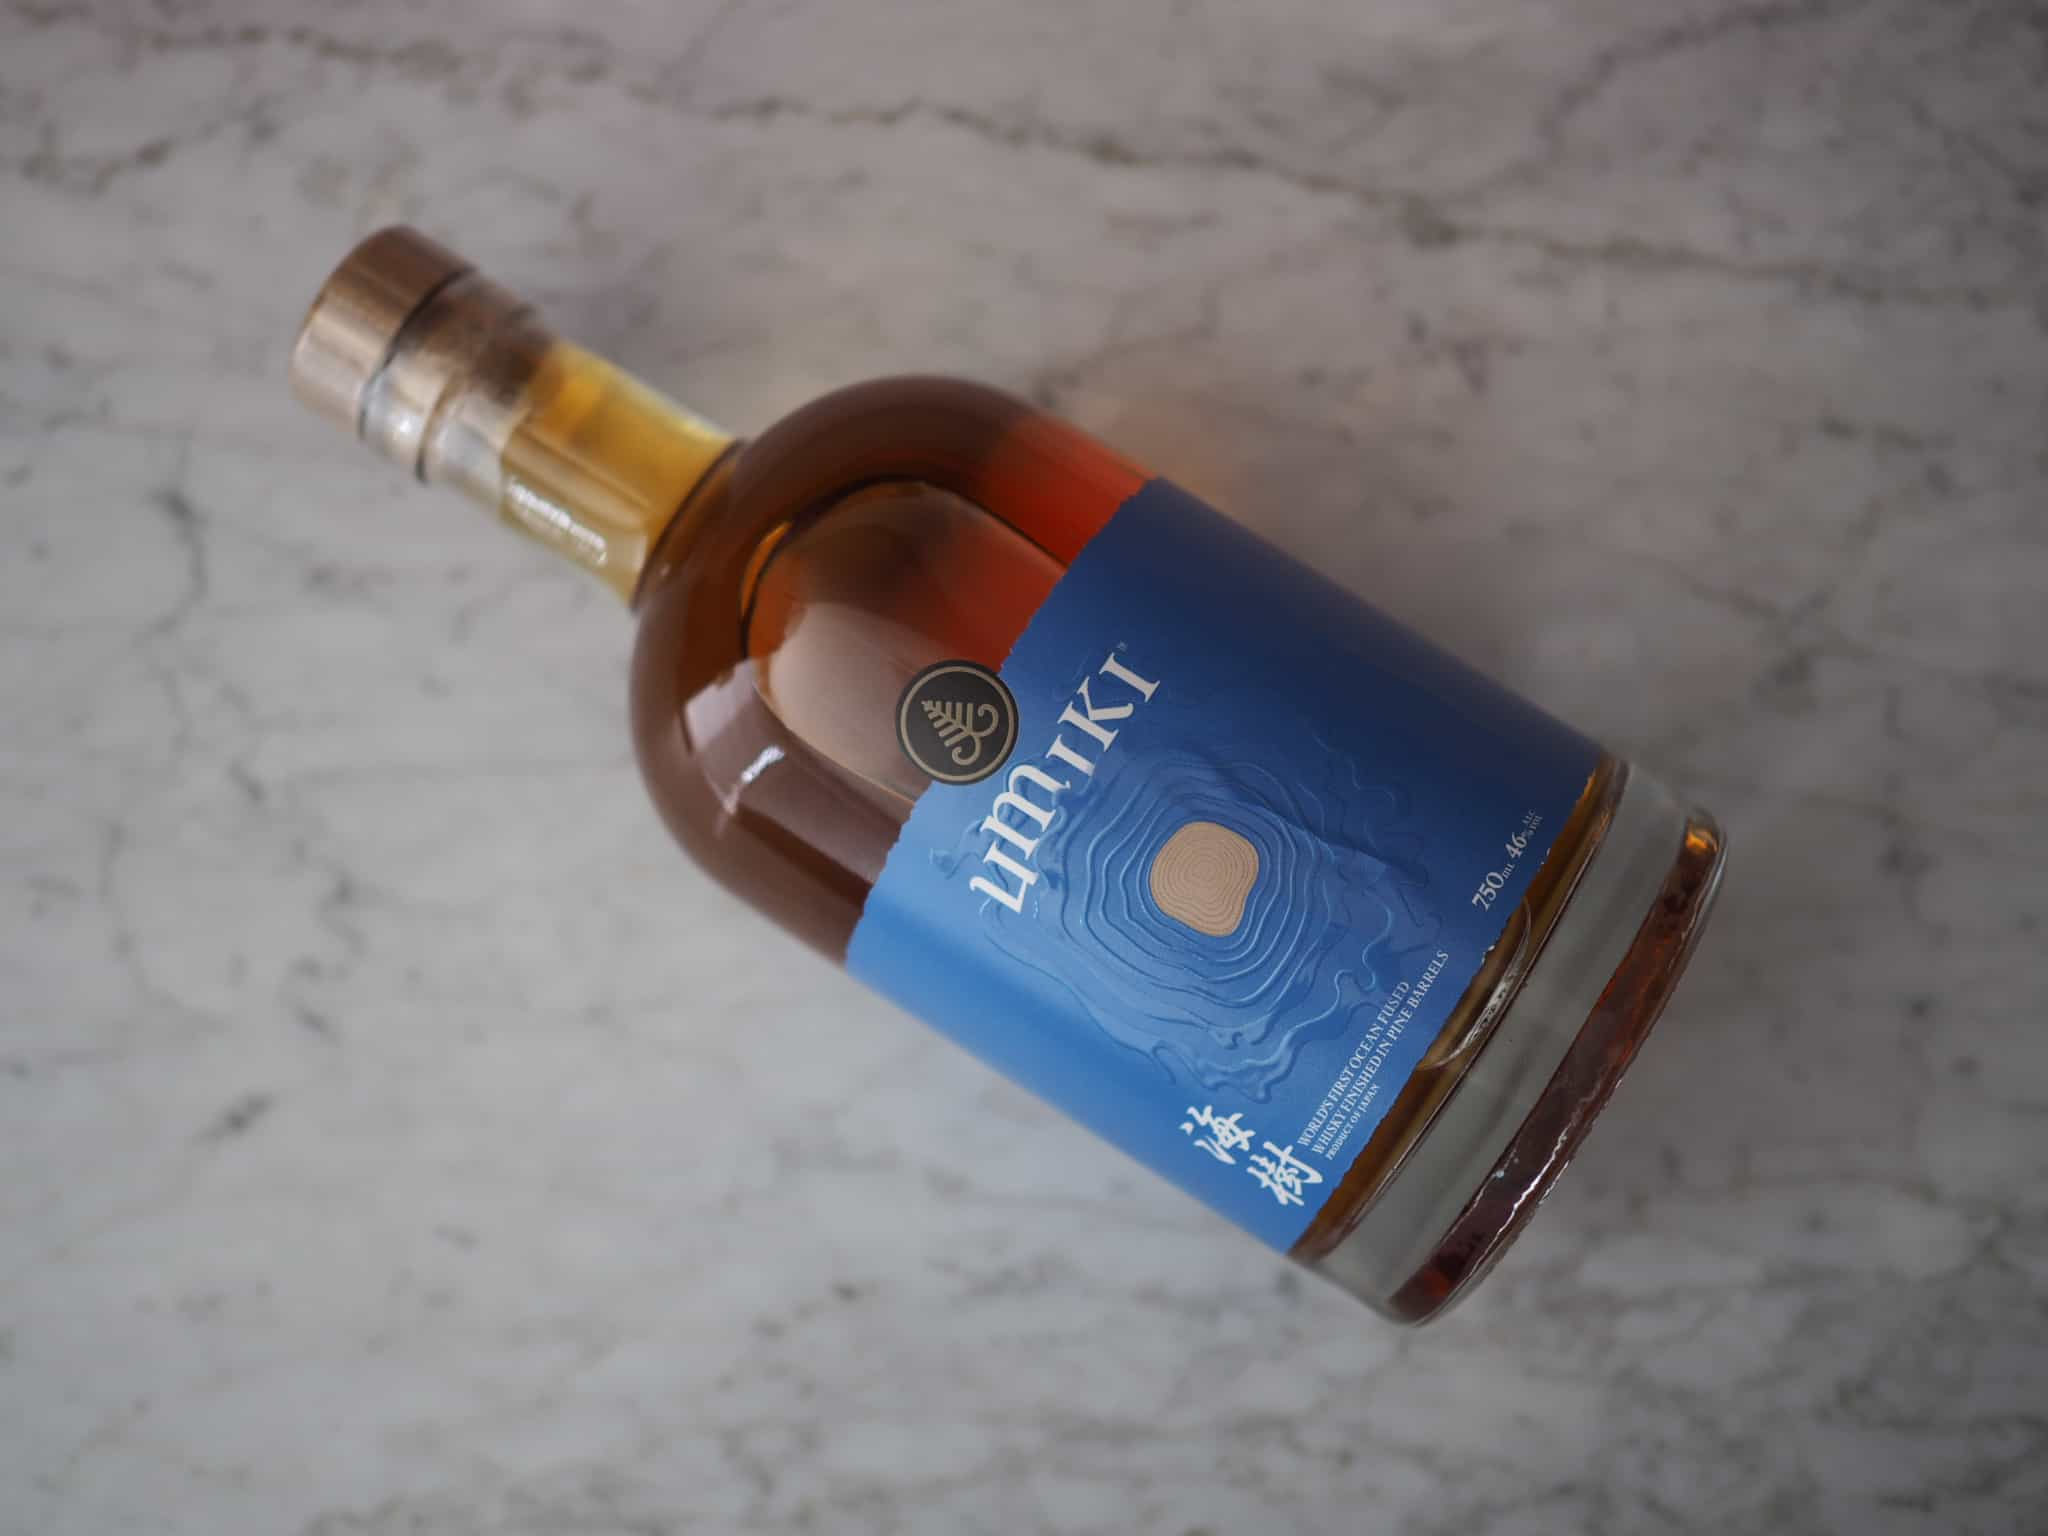 Umiki Japanese Whisky